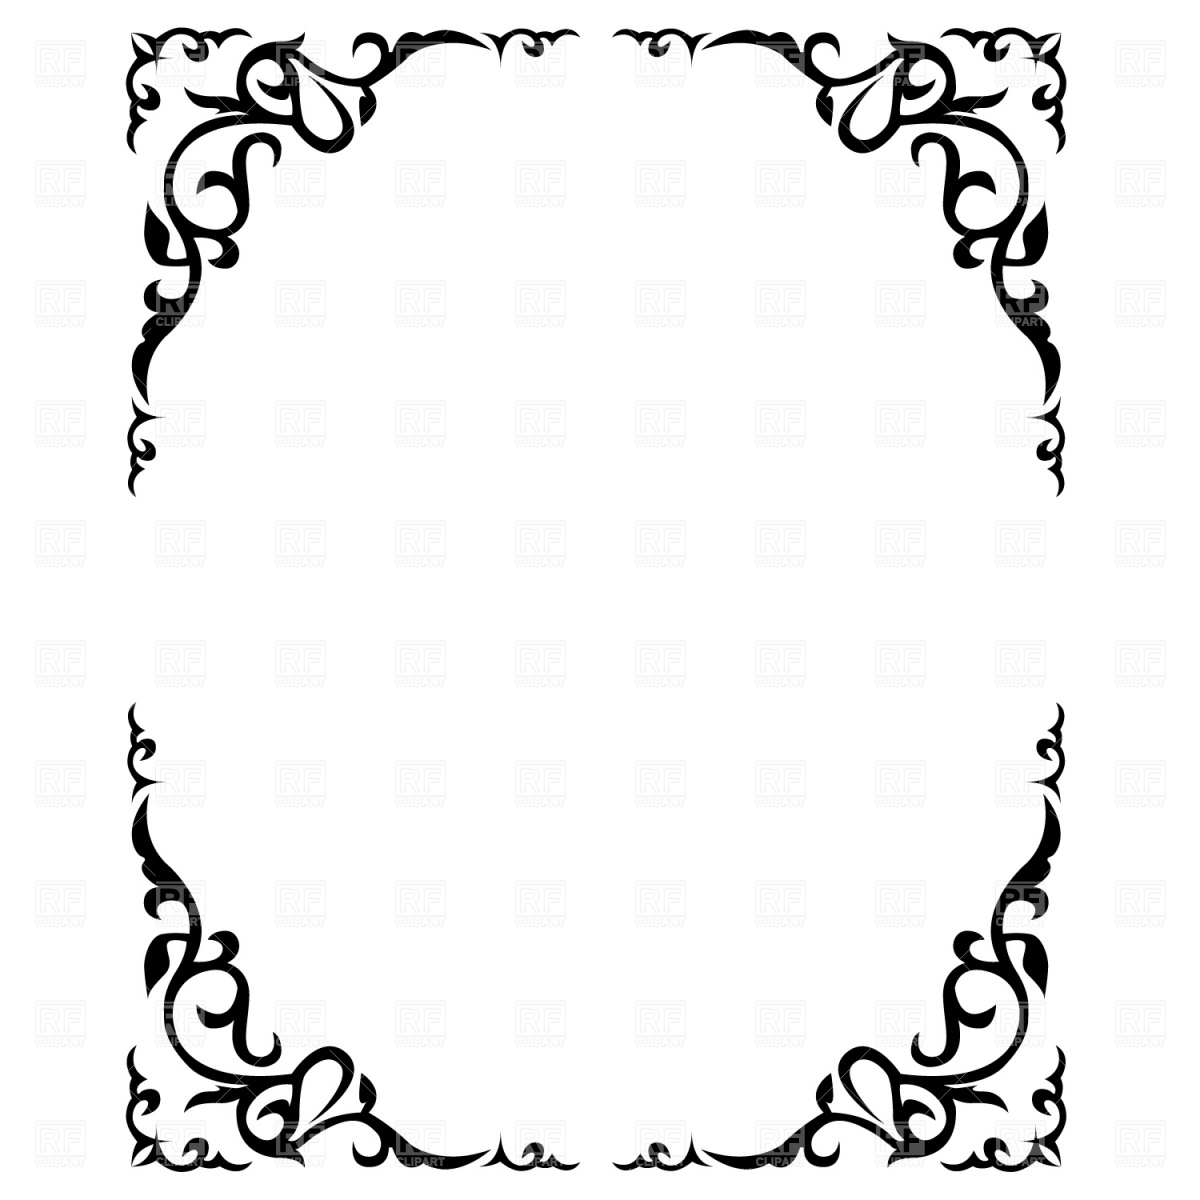 Colorful border frame gallery picture frame ideas 20 royalty free vector frame images vector borders and frames free stopboris Choice Image